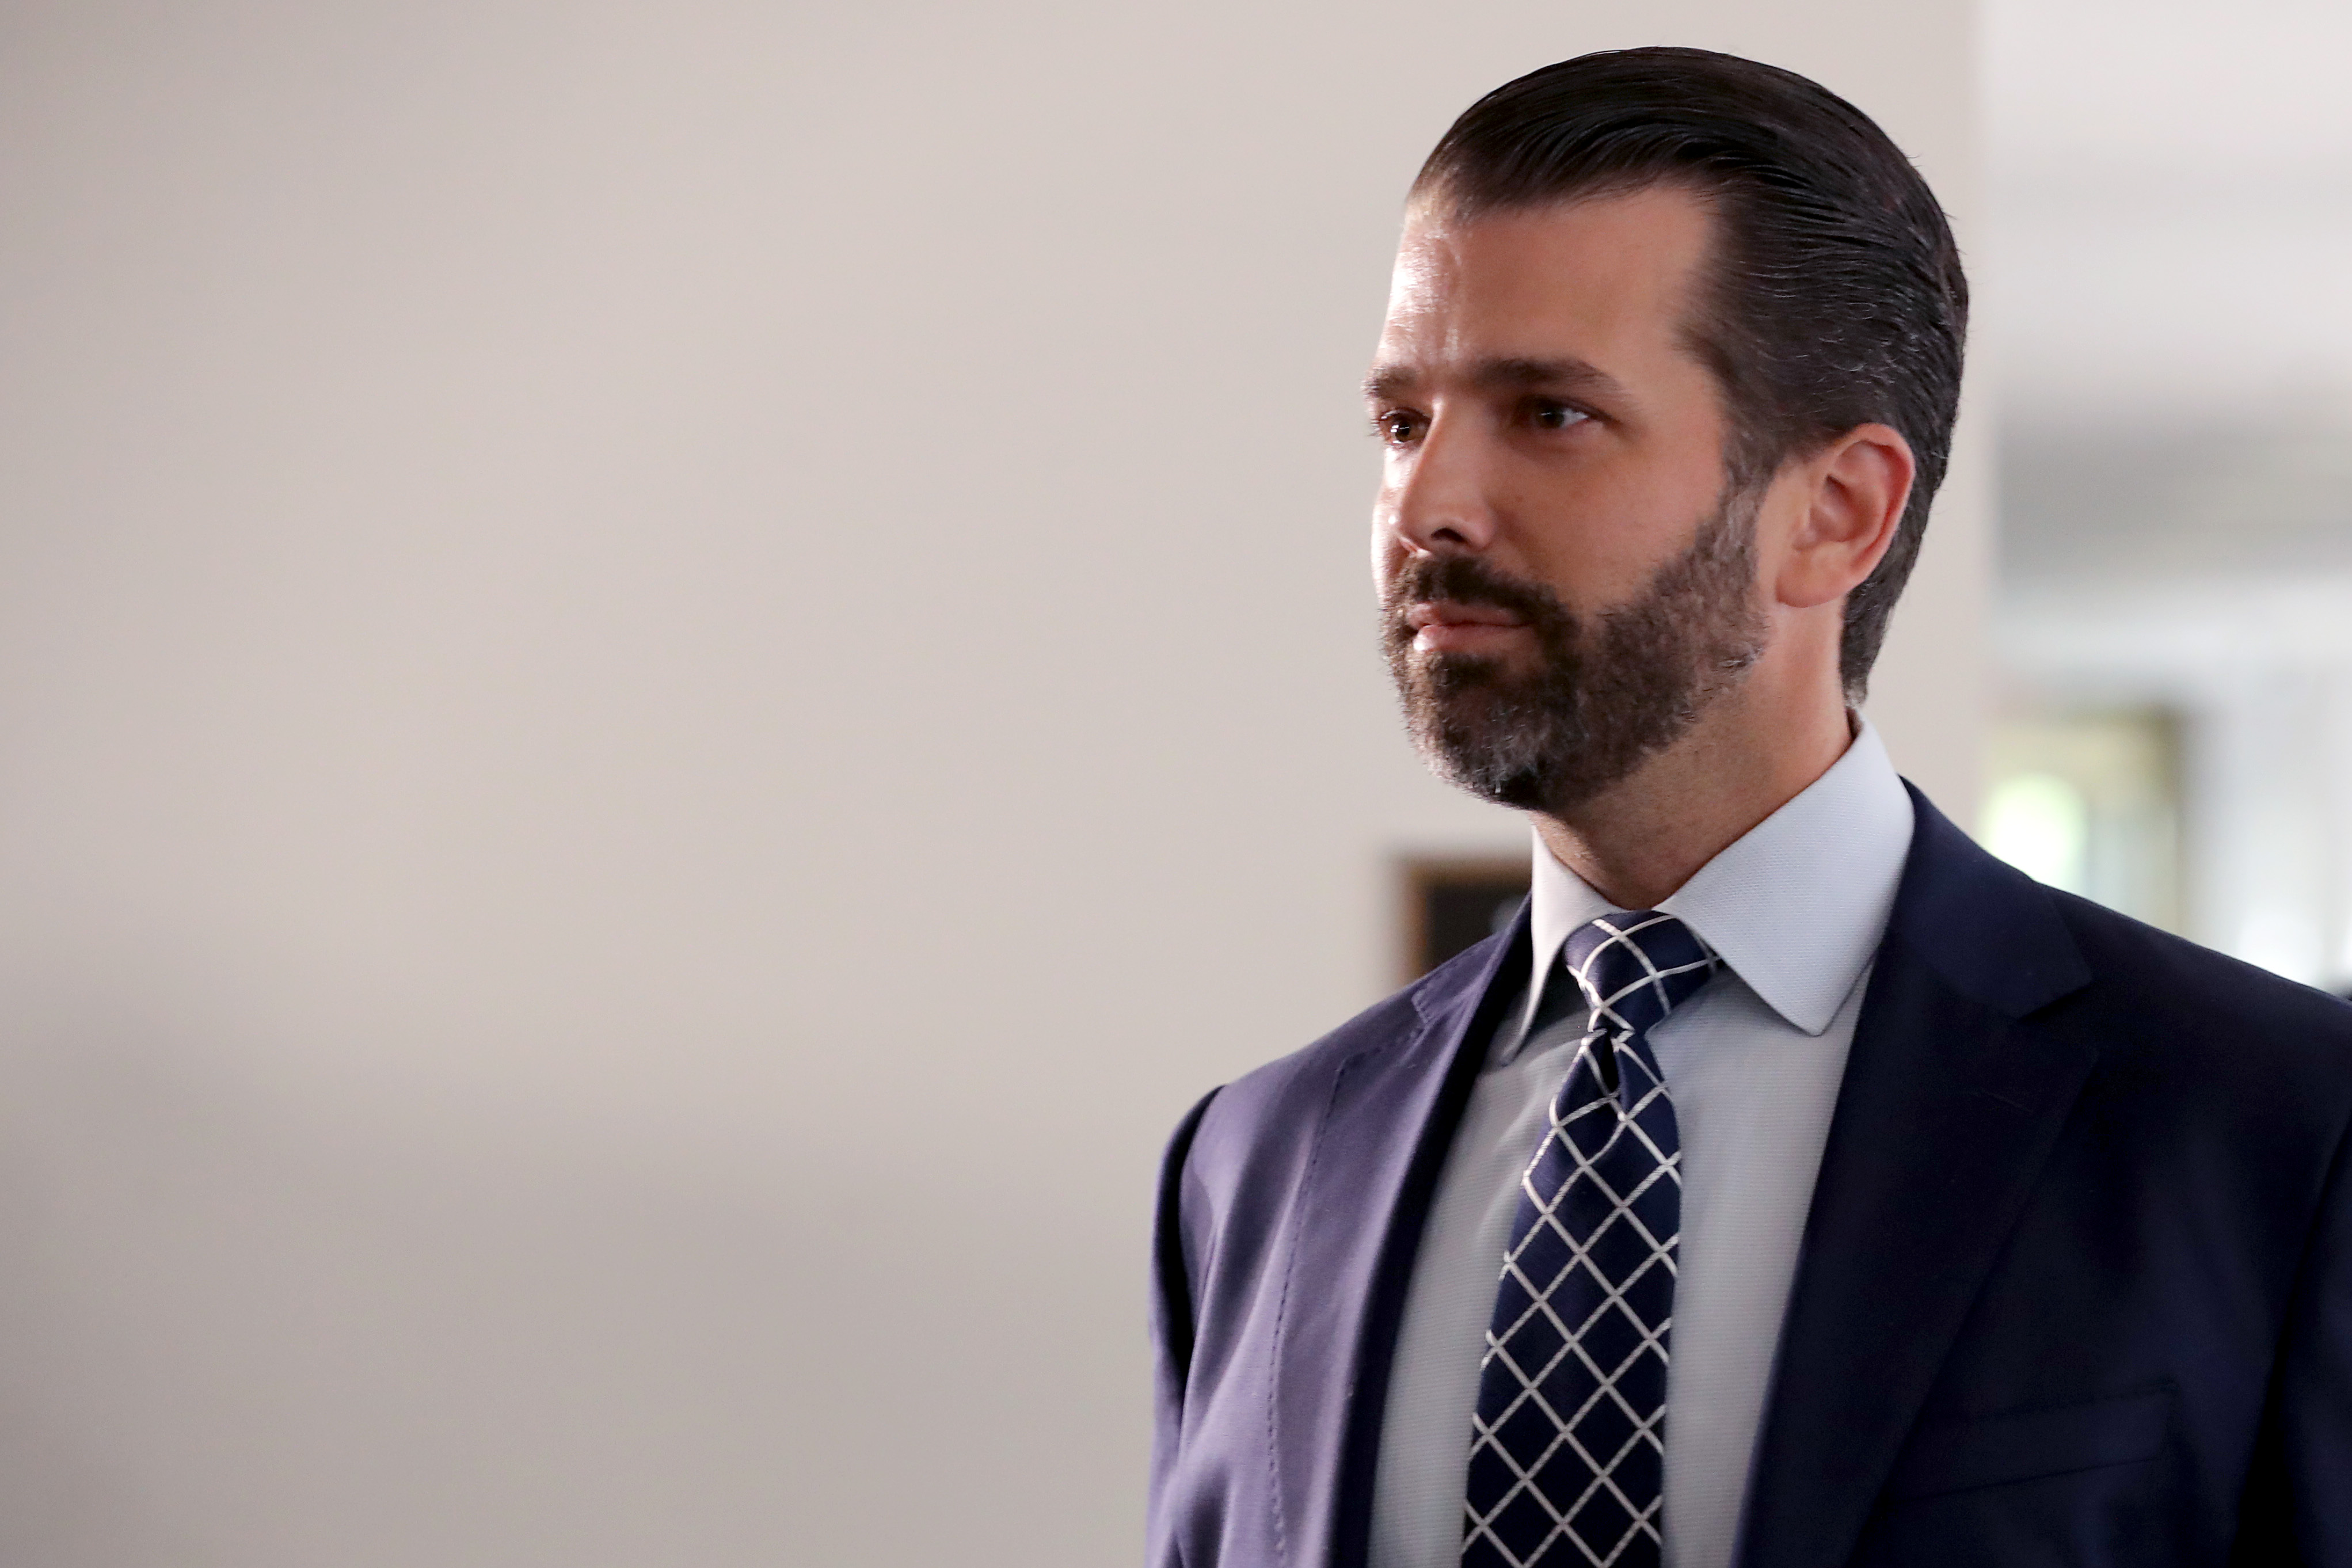 Donald Trump Jr. deposed by DC attorney general as part of inaugural funds lawsuit